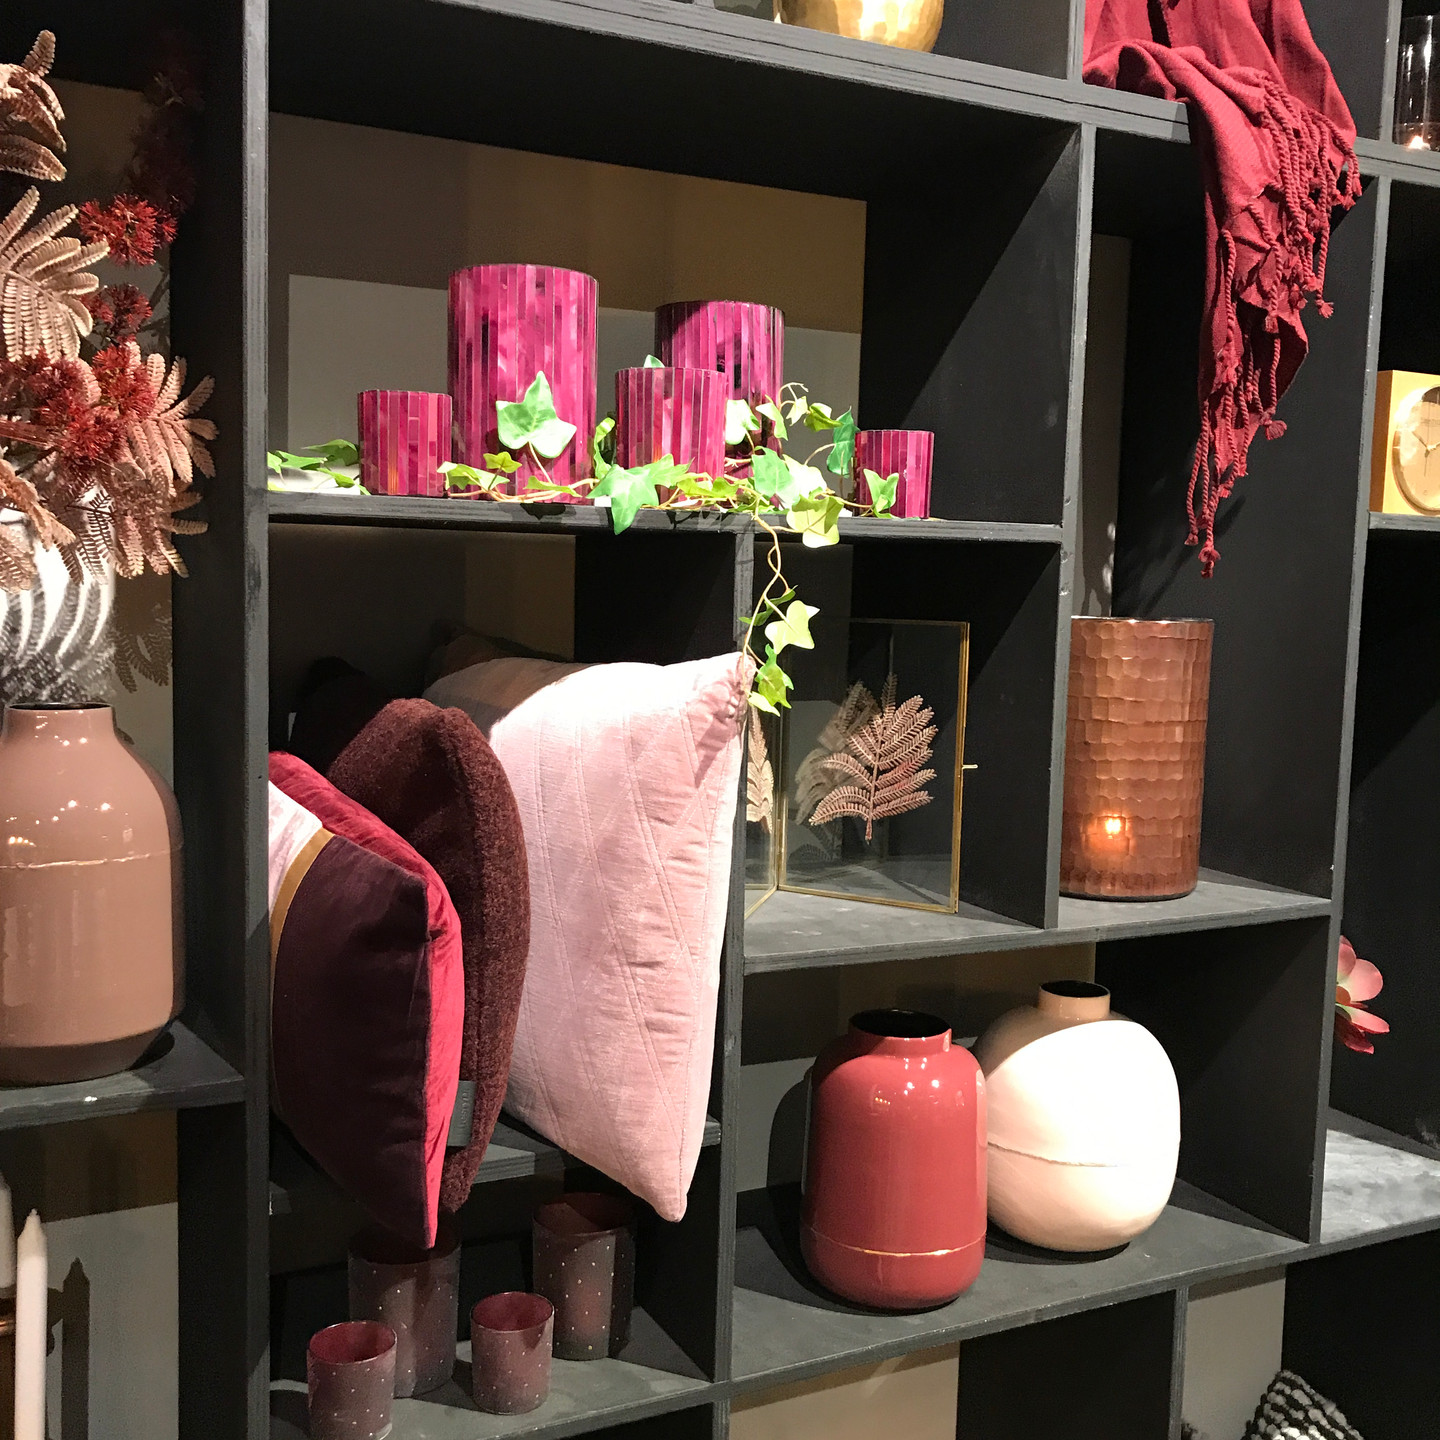 Burgundy and mauve home accessories display wall